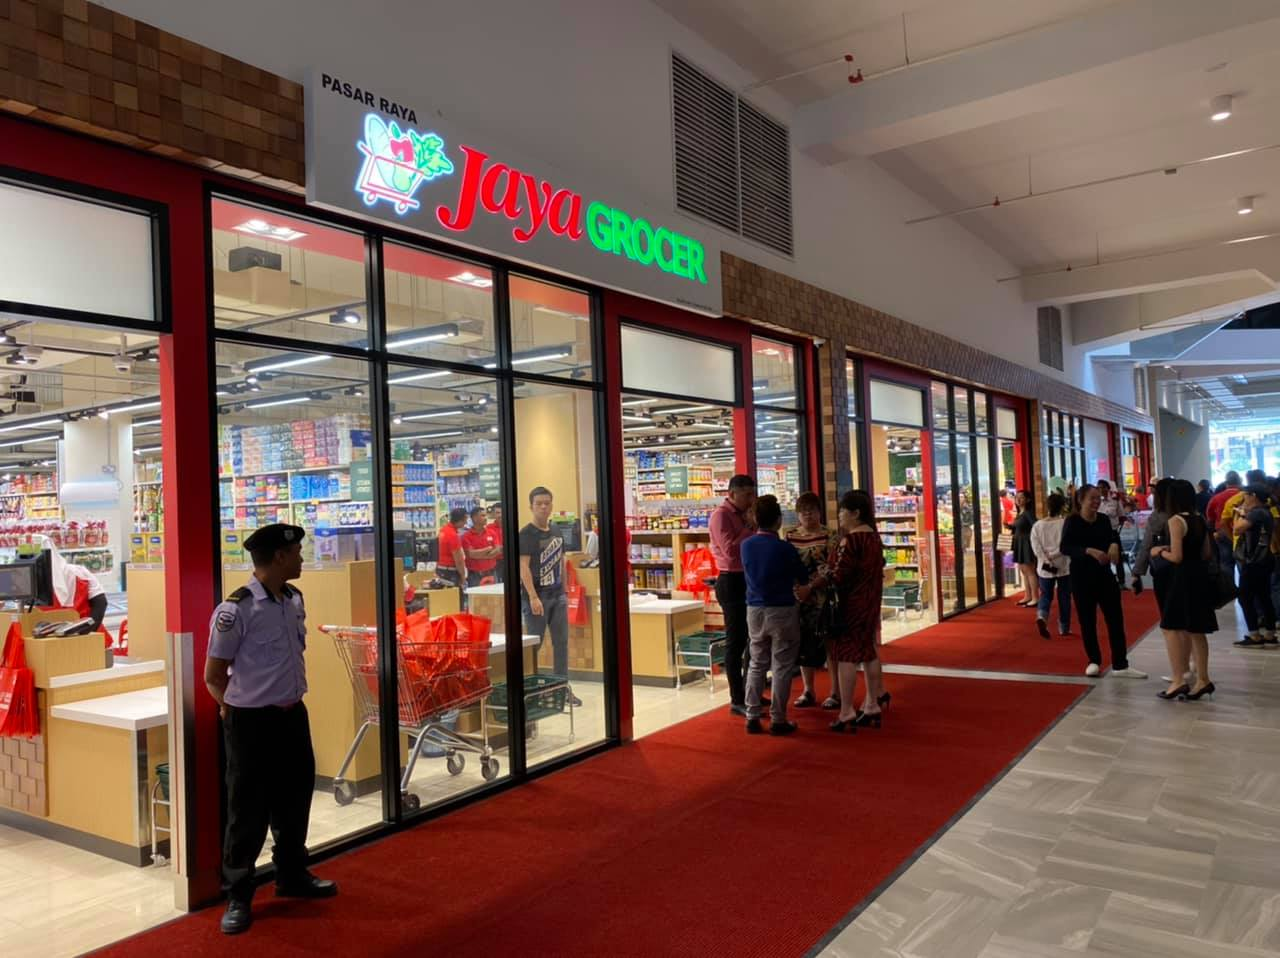 jaya grocer grocery delivery malaysia